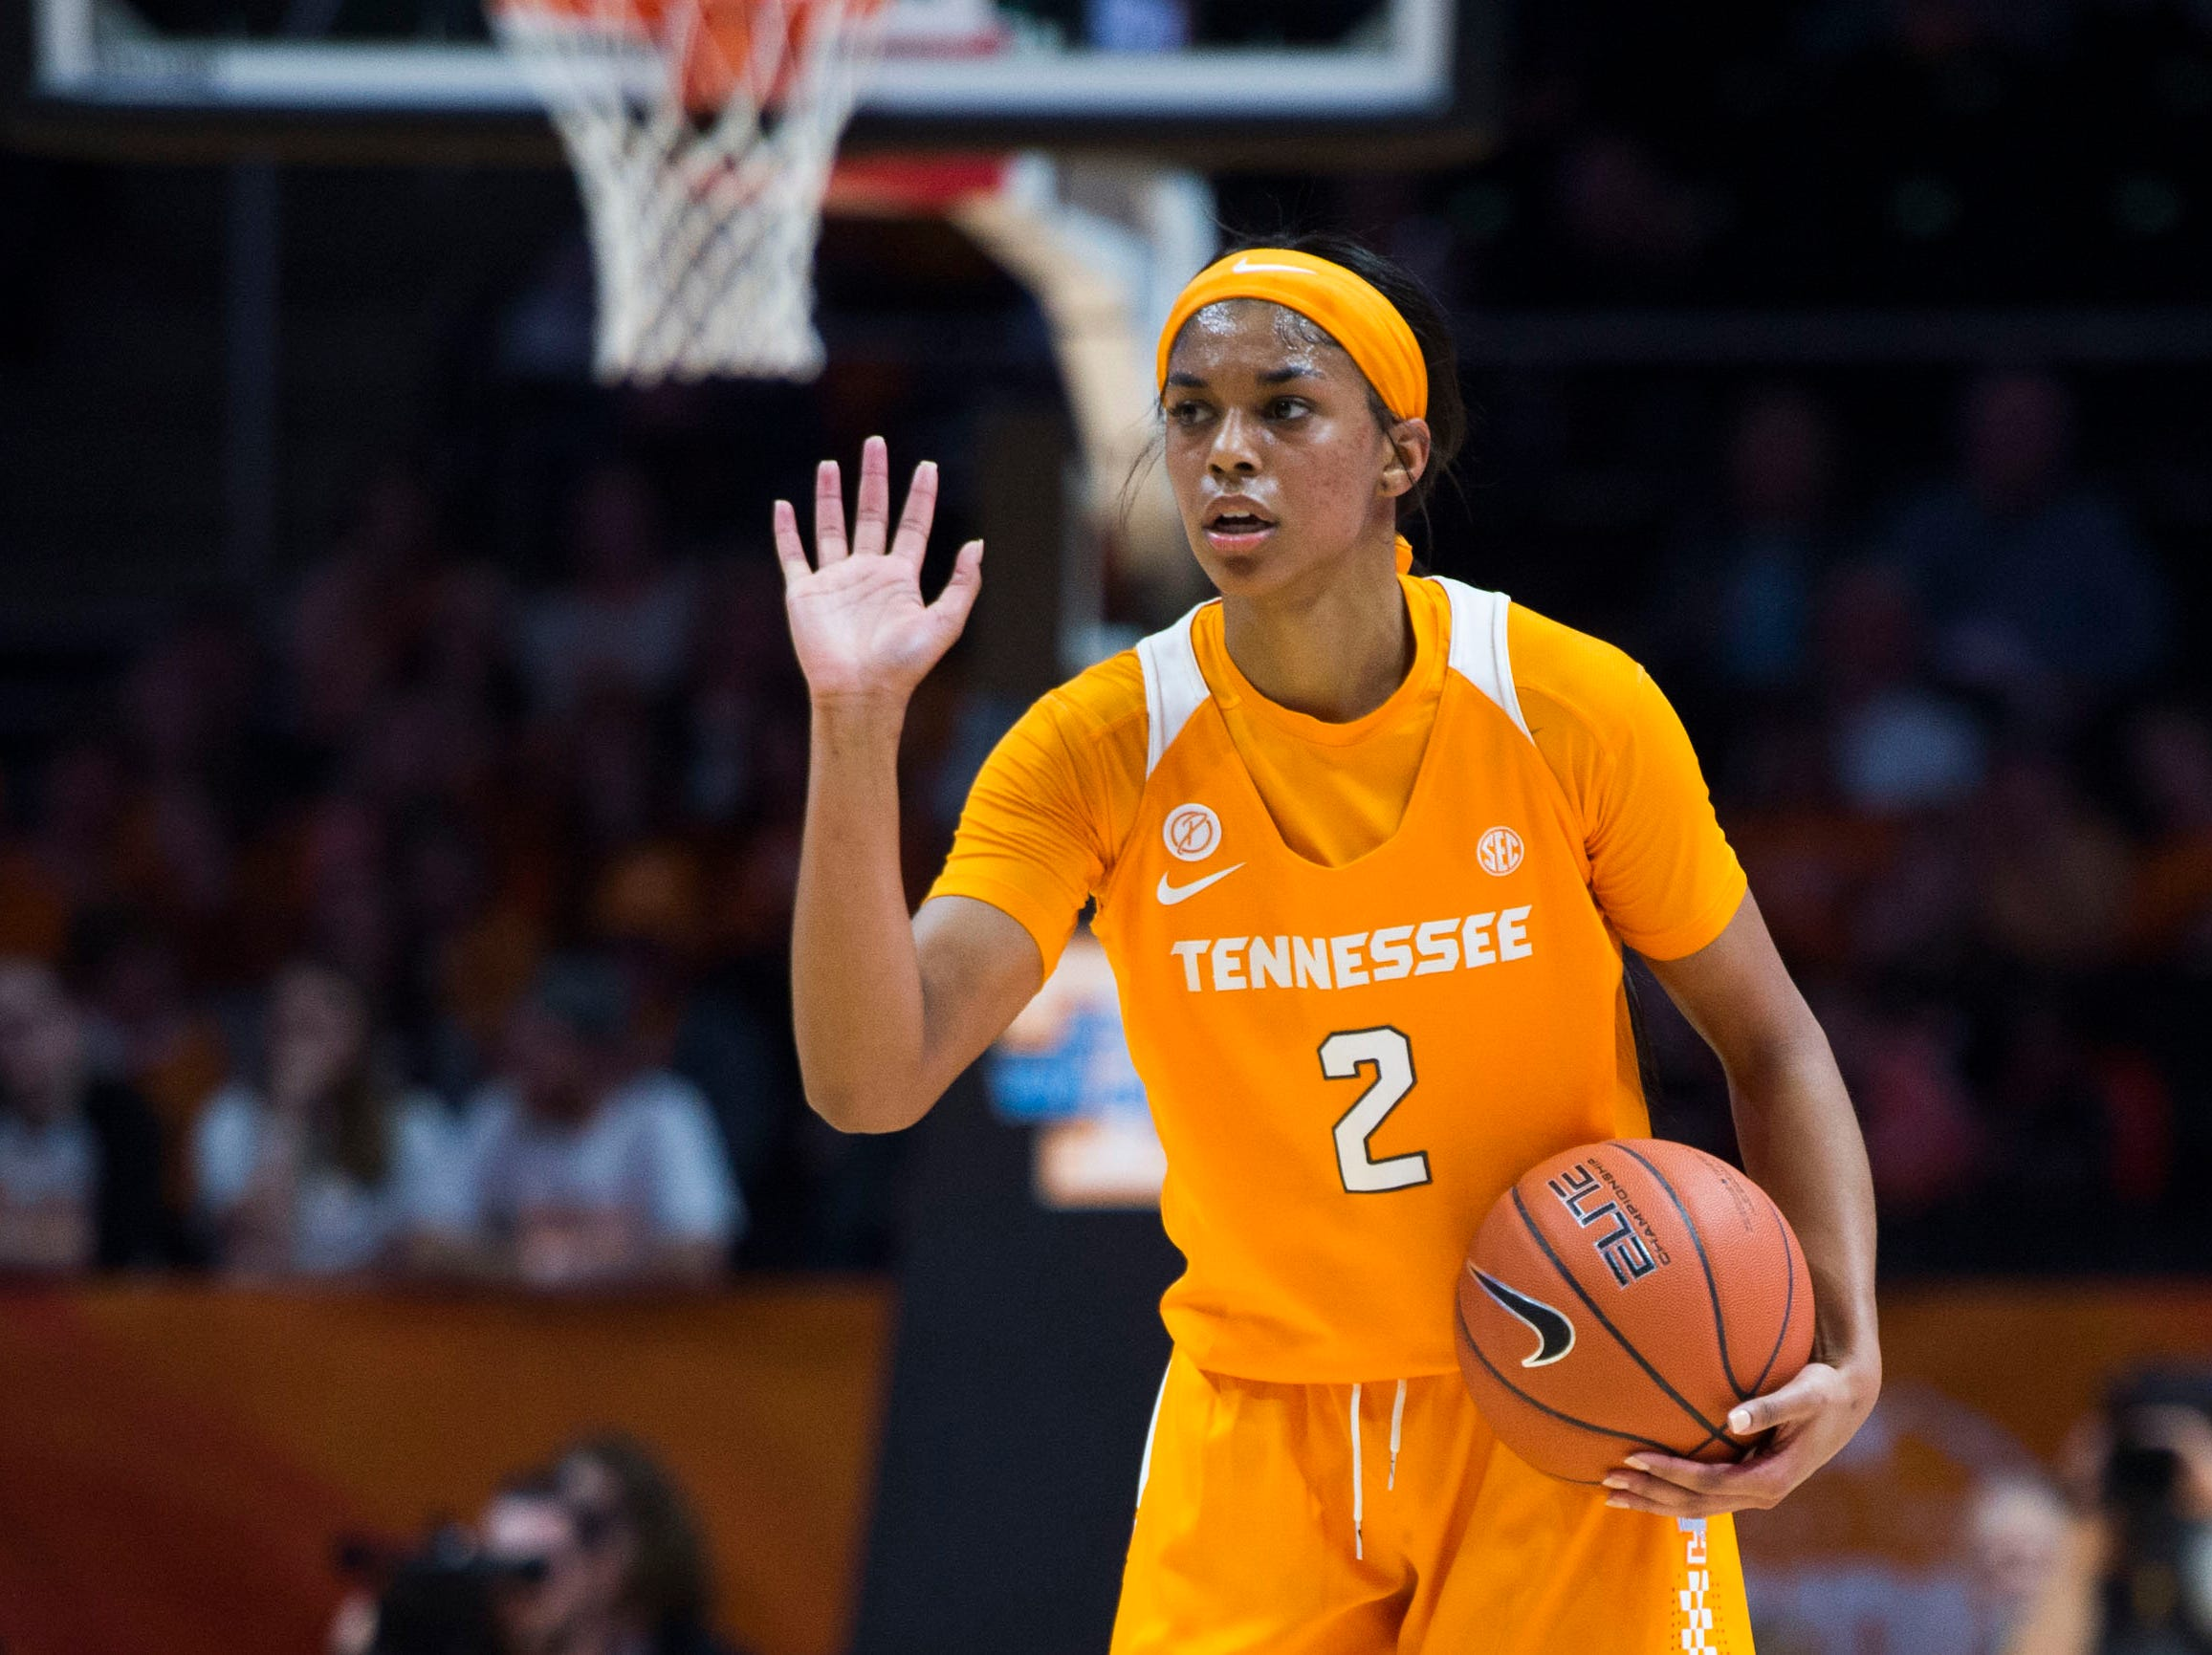 Tennessee's Evina Westbrook (2) talks to teammates during a women's basketball game between Tennessee and Stanford at Thompson-Boling Arena Tuesday, Dec. 18, 2018.